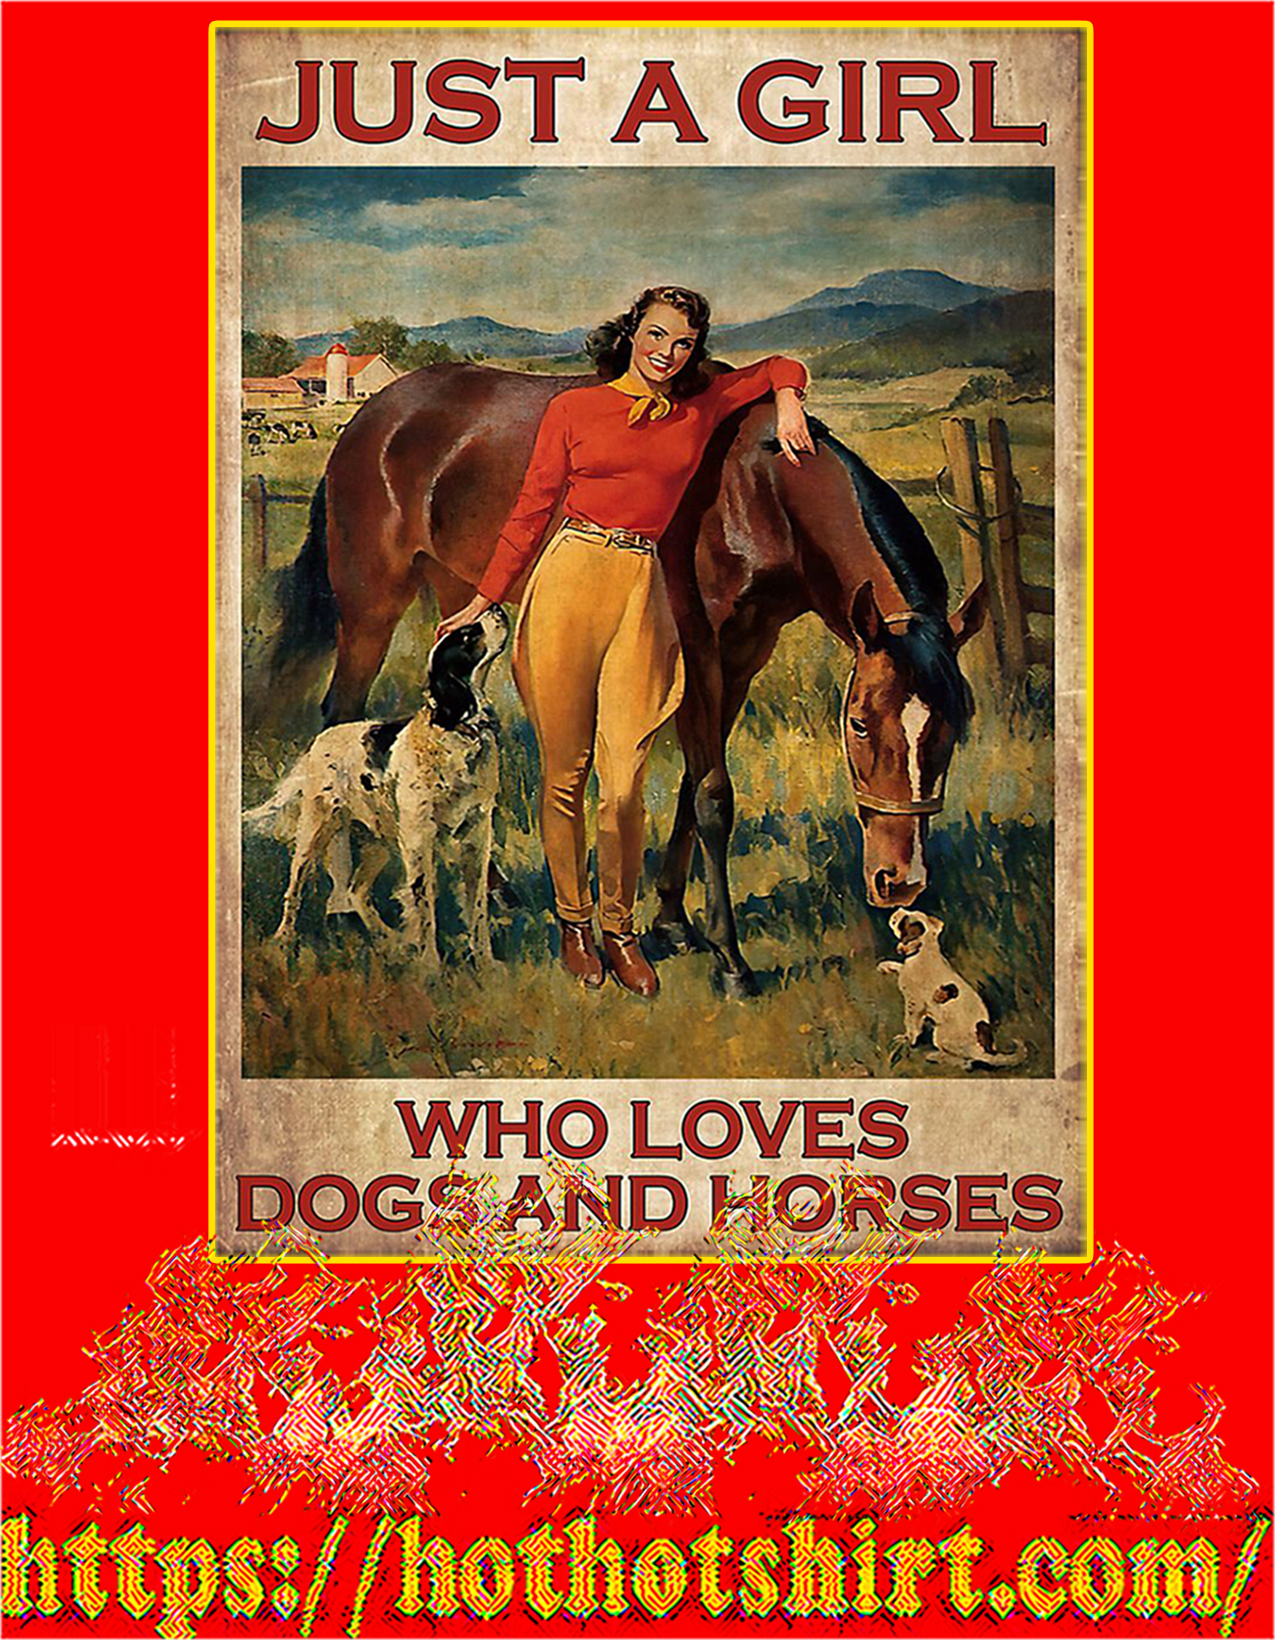 Just a girl who loves dogs and horses poster - A2